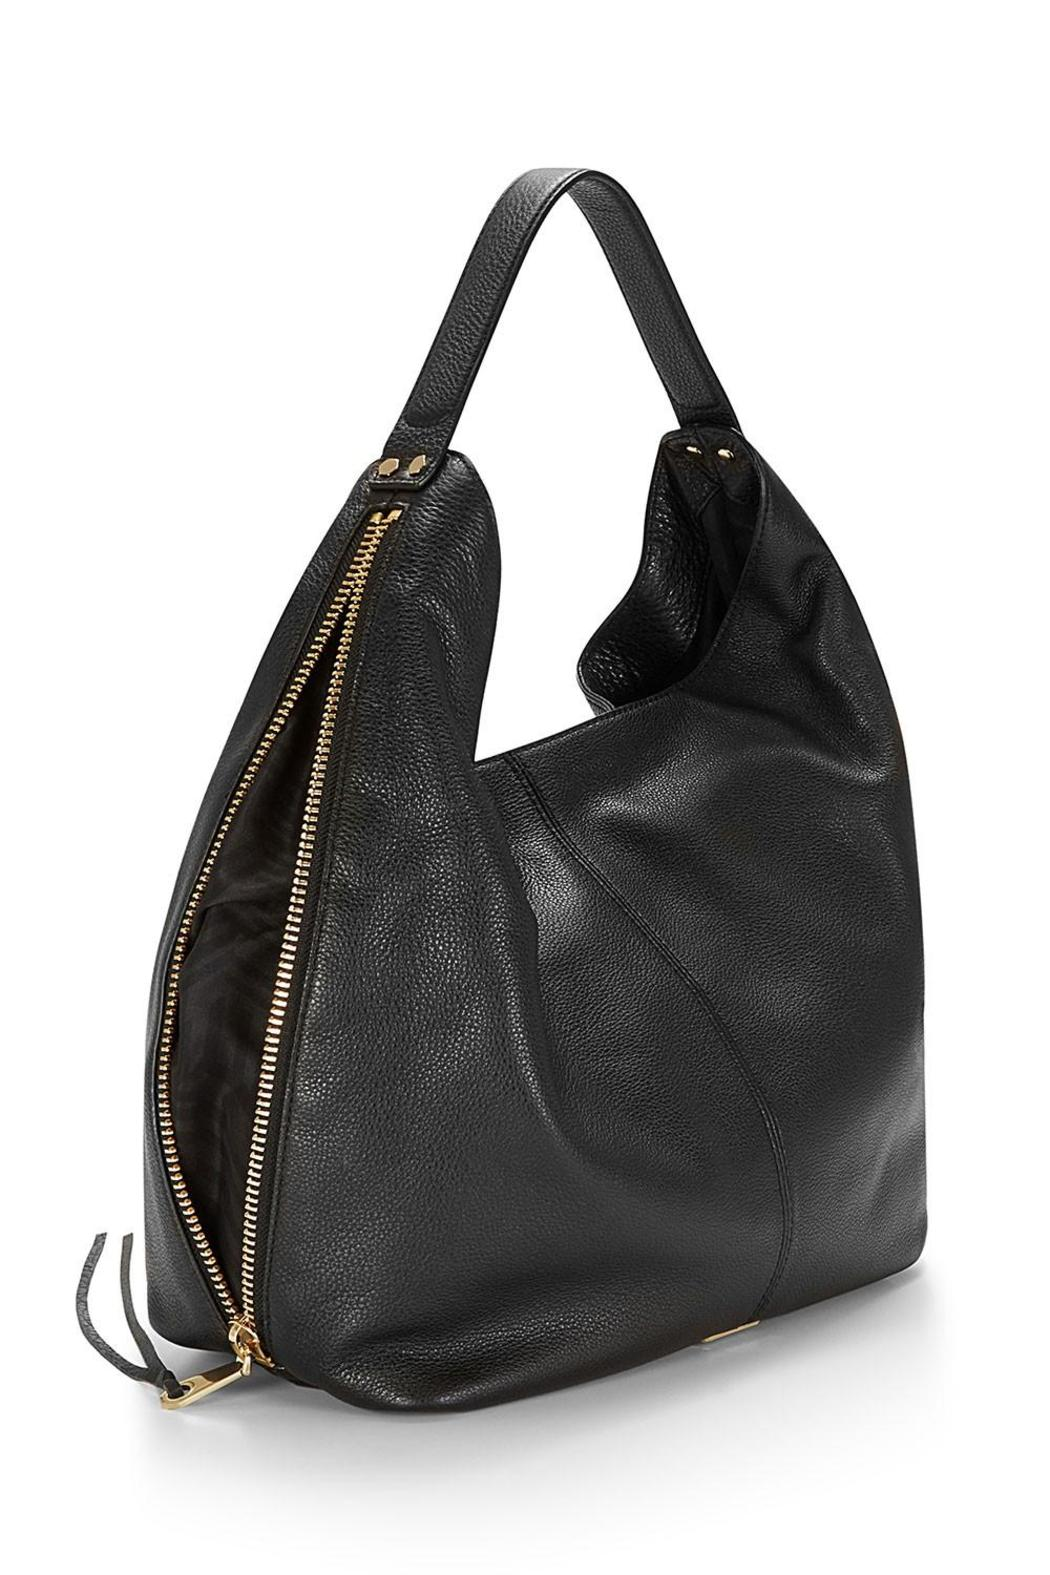 1e3a4298a Rebecca Minkoff Bryn Double Zip Hobo from Hudson Valley by Bfree ...